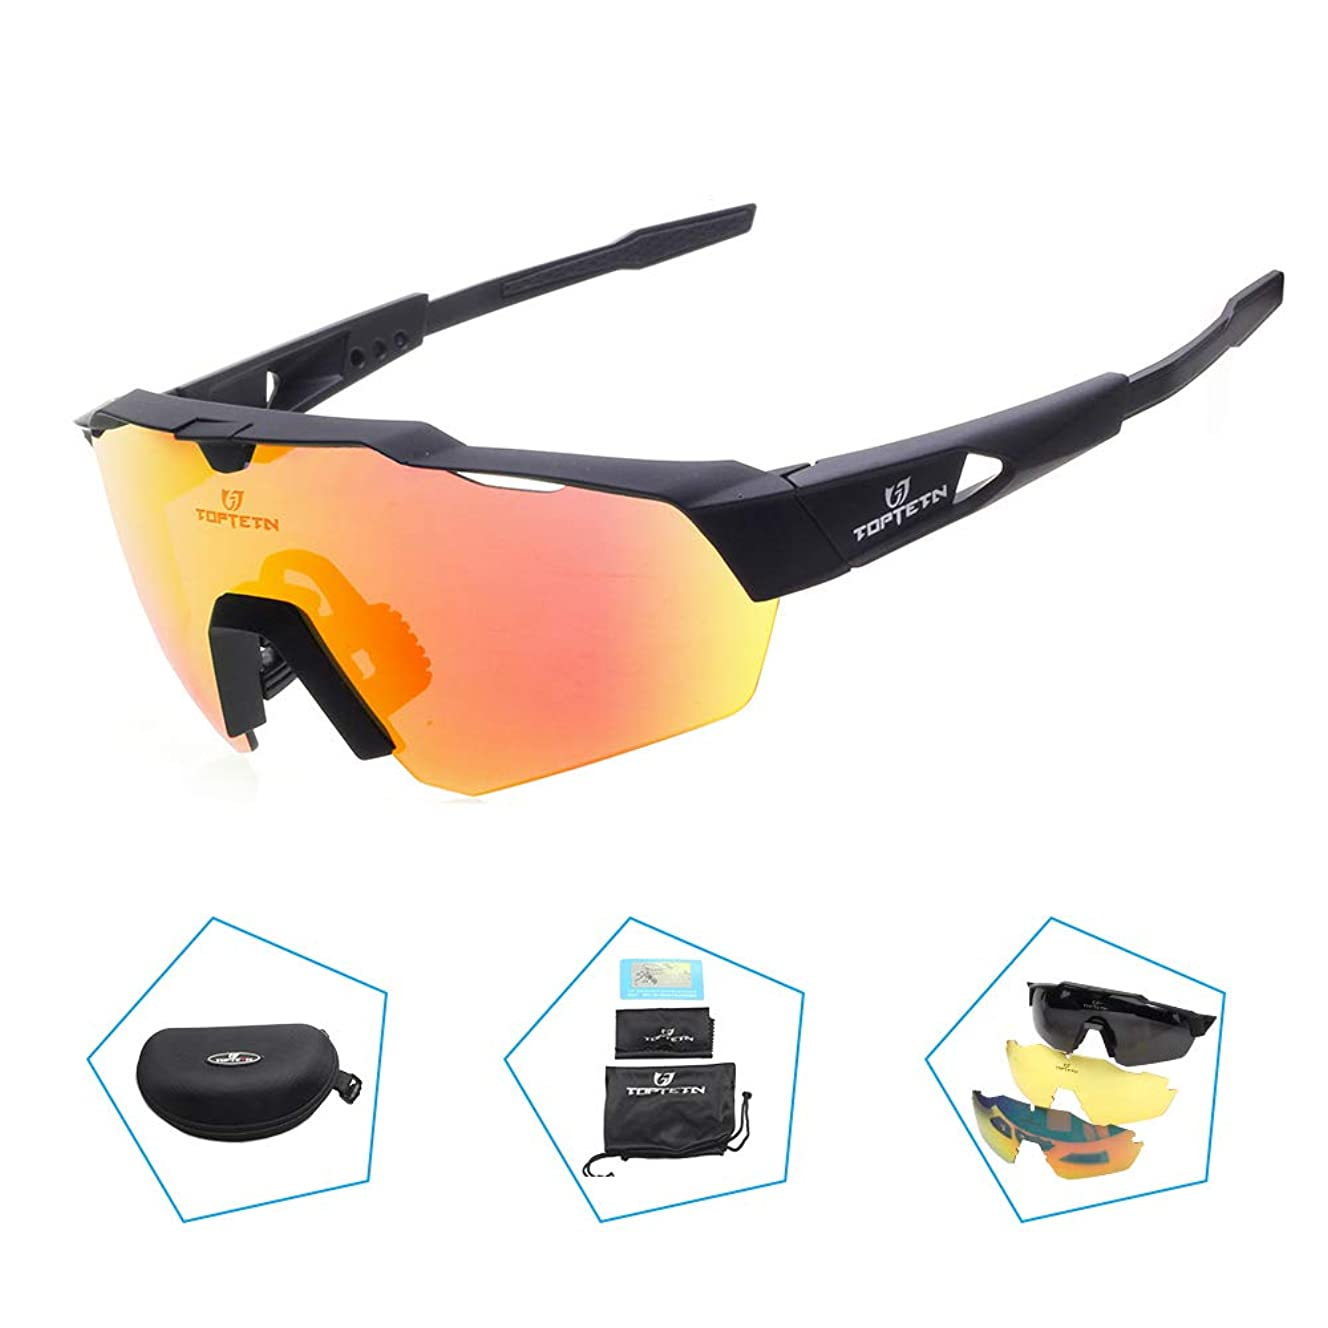 TOPTETN Polarized Sports Sunglasses with Interchangeable Lenes for Men Women Cycling Running Driving Fishing Golf Baseball Glasses hii4444993